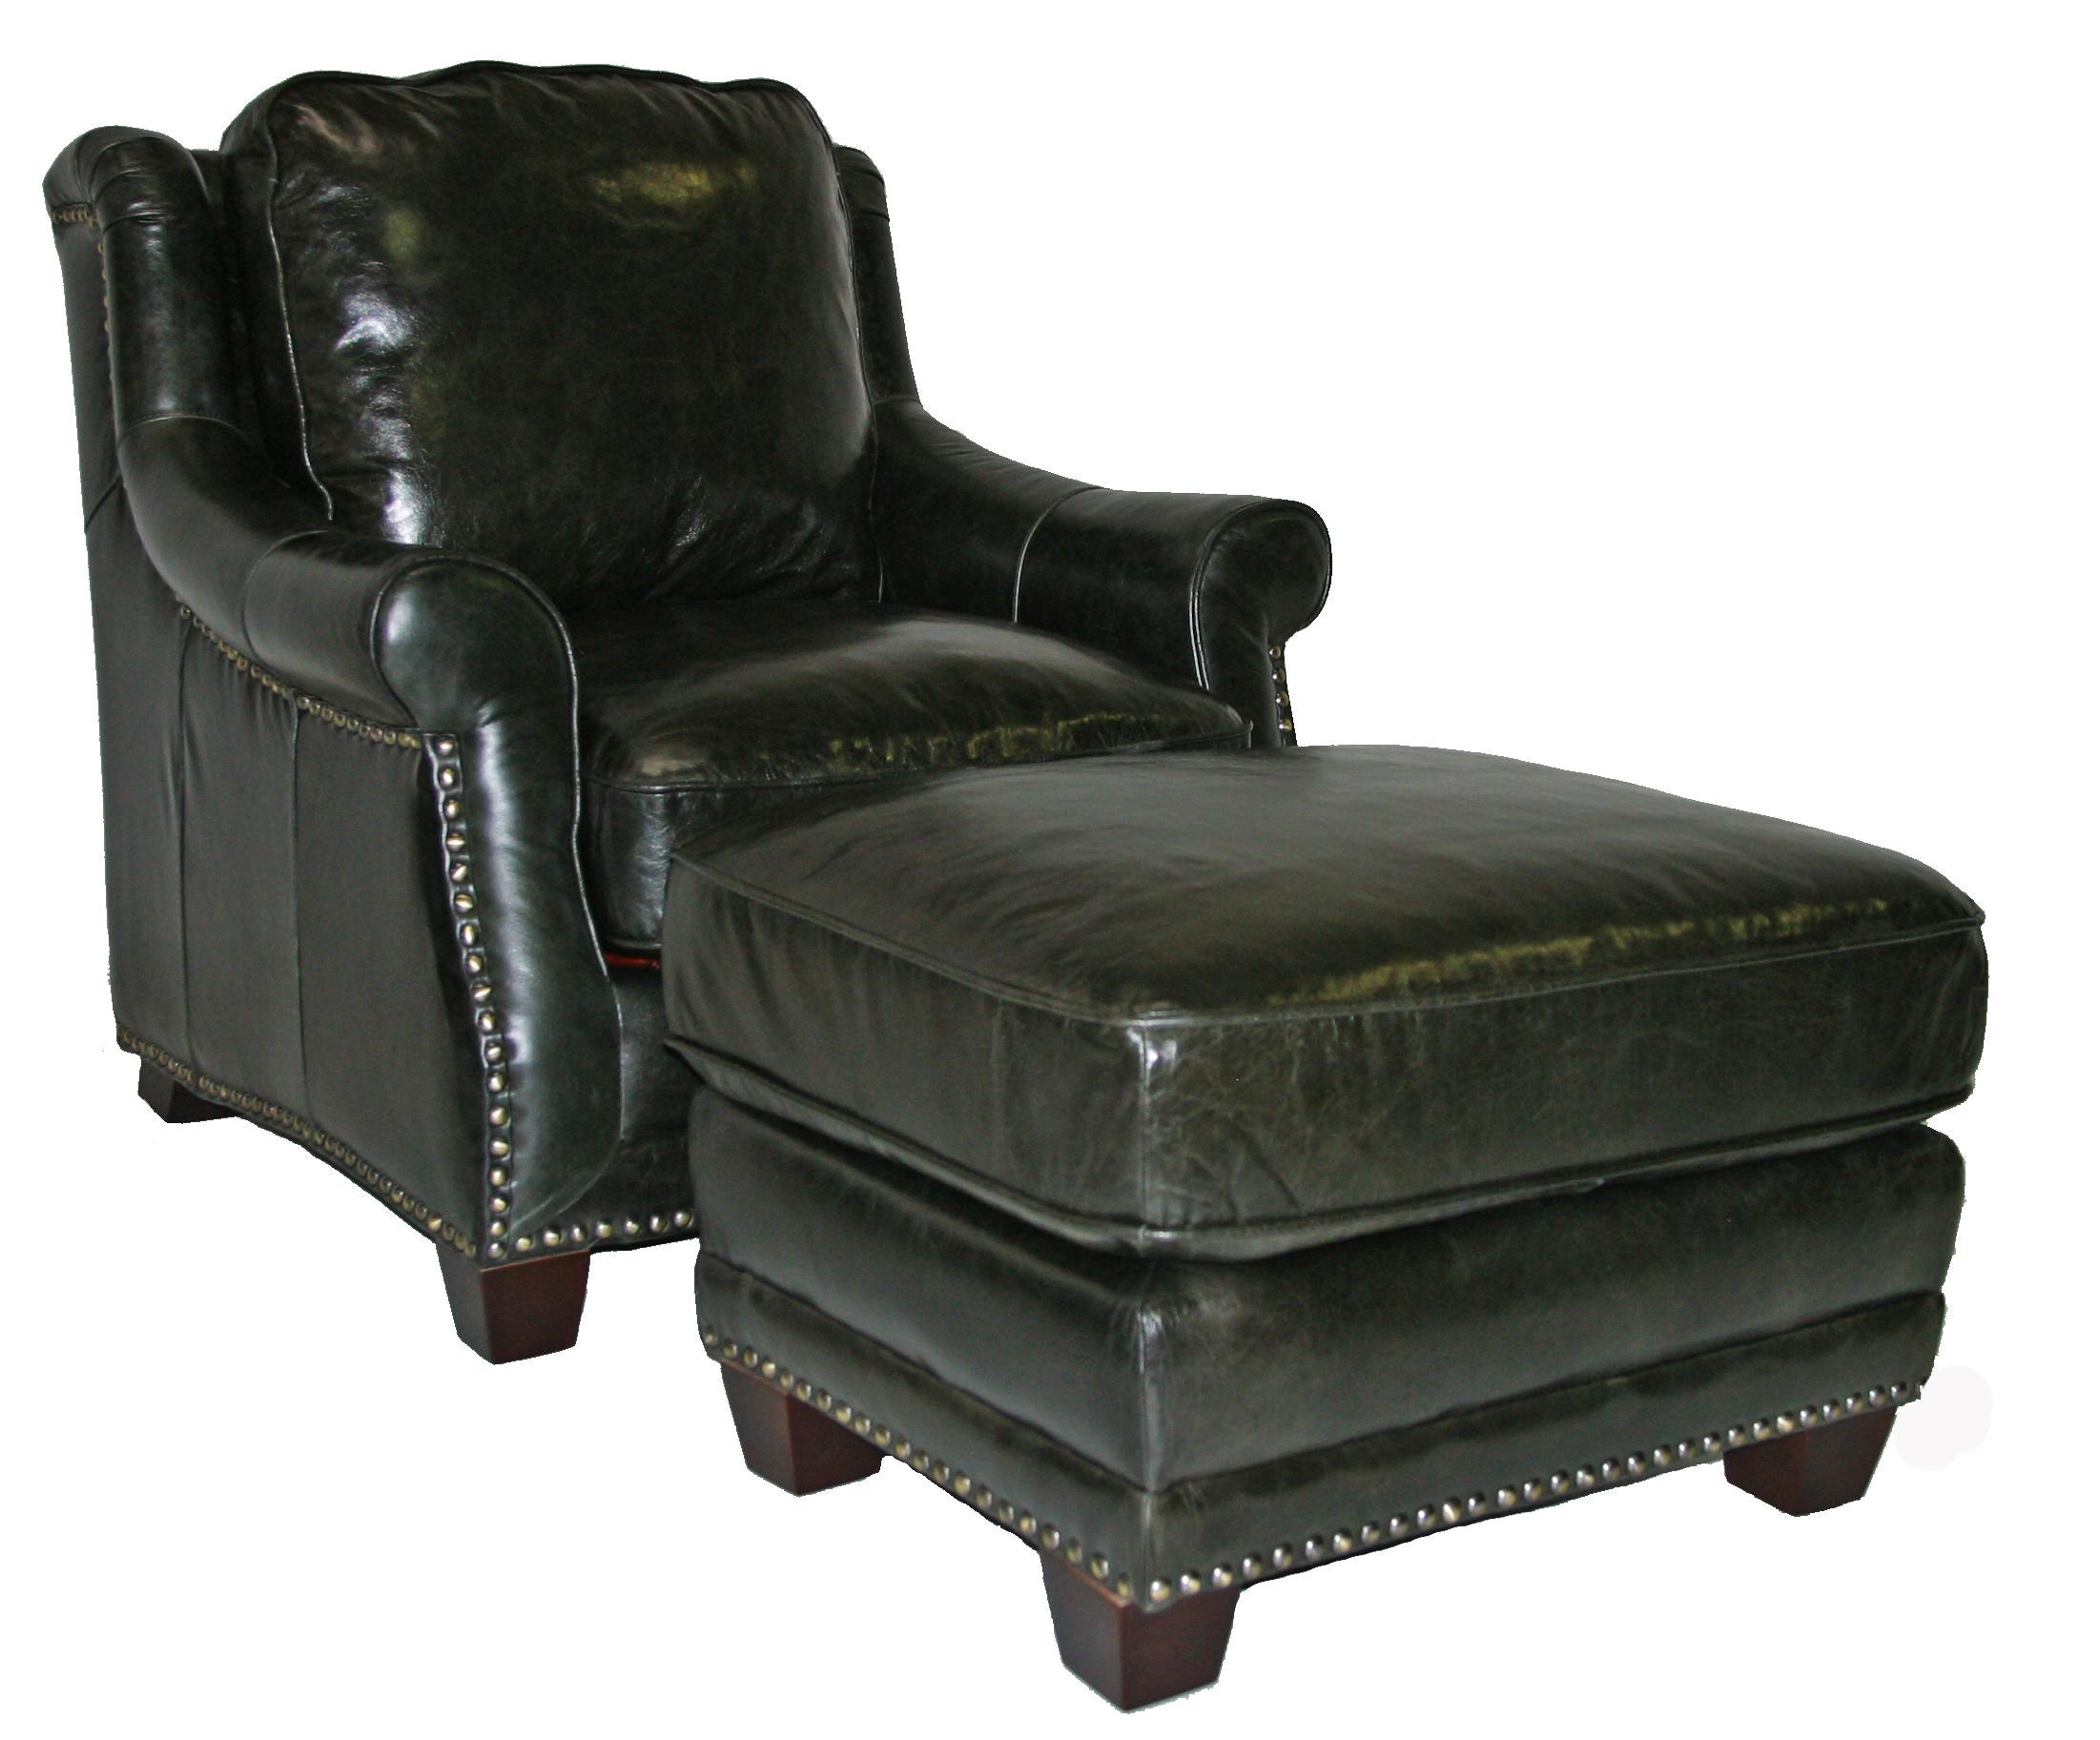 Beau Leather Italia USA Buchanan Traditional Chair U0026 Ottoman Set